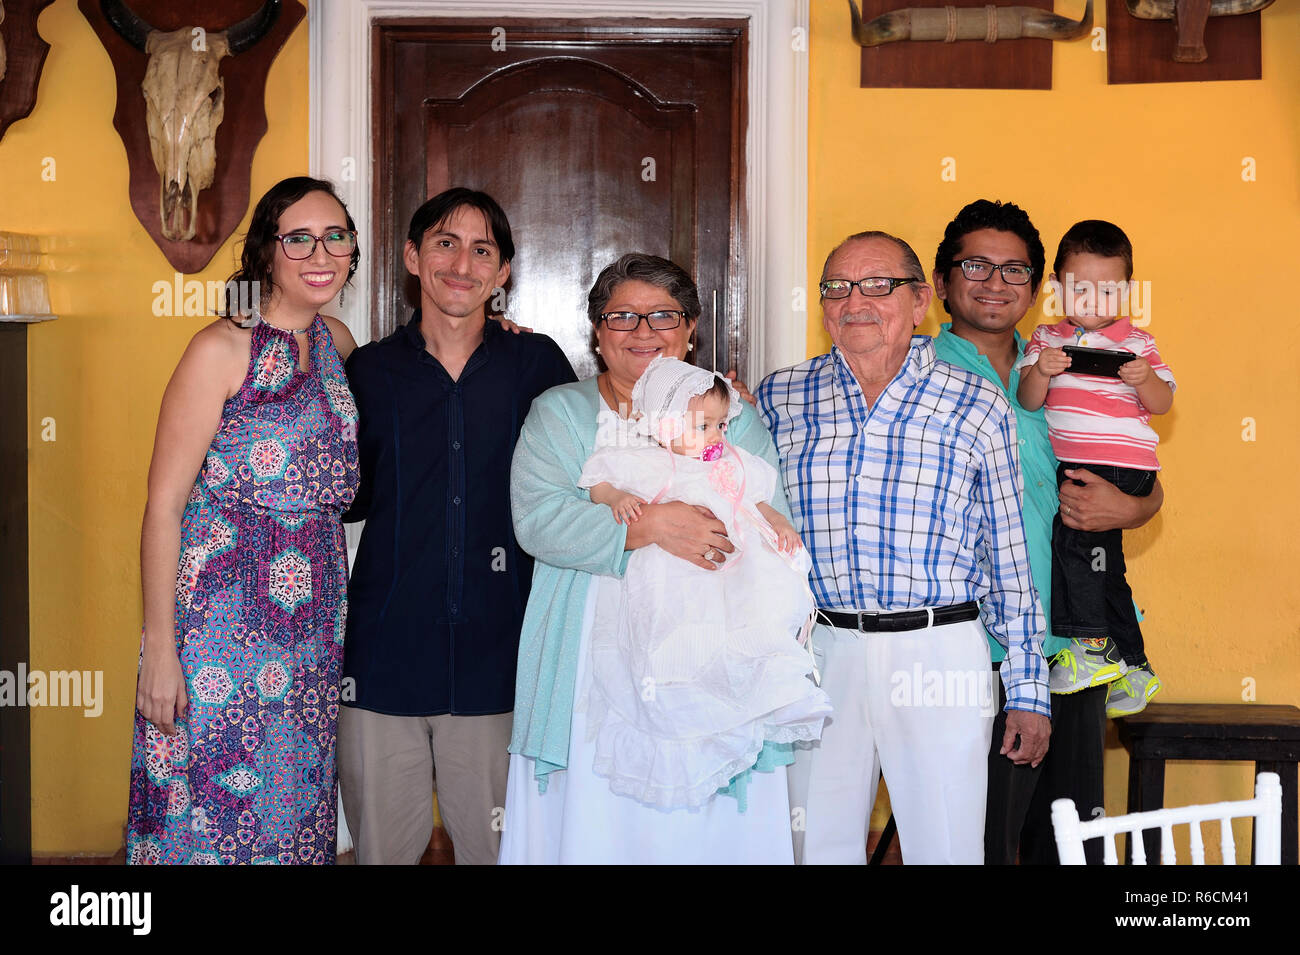 MERIDA, YUC/MEXICO - NOV 13, 2017: Candid portrait of guests holding the just baptised baby girl at the party. - Stock Image